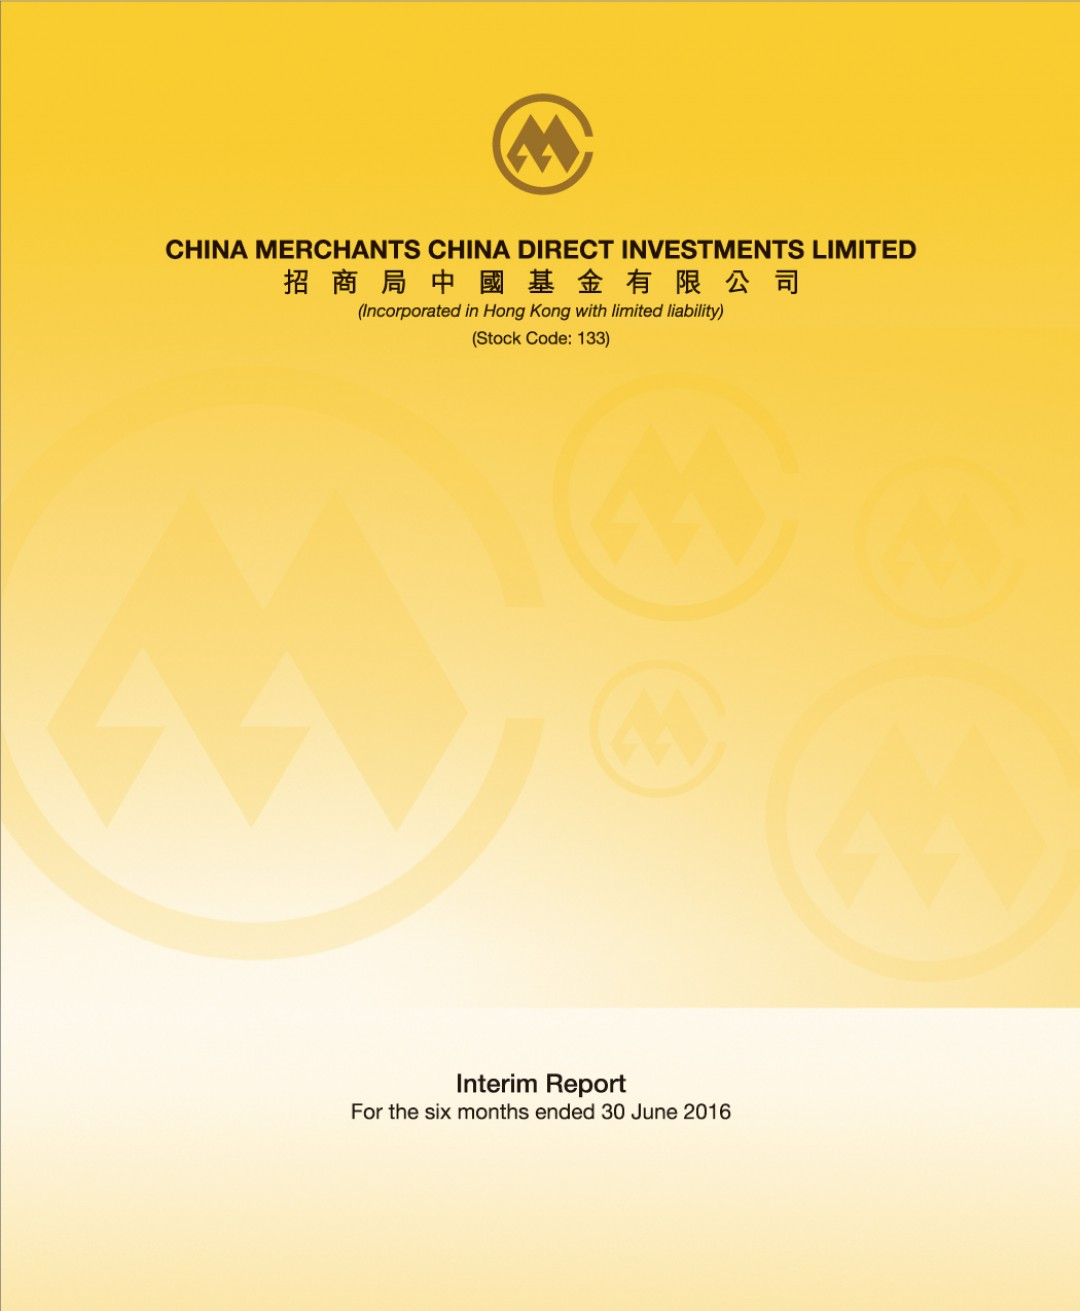 China Merchants China Direct Investments Limited